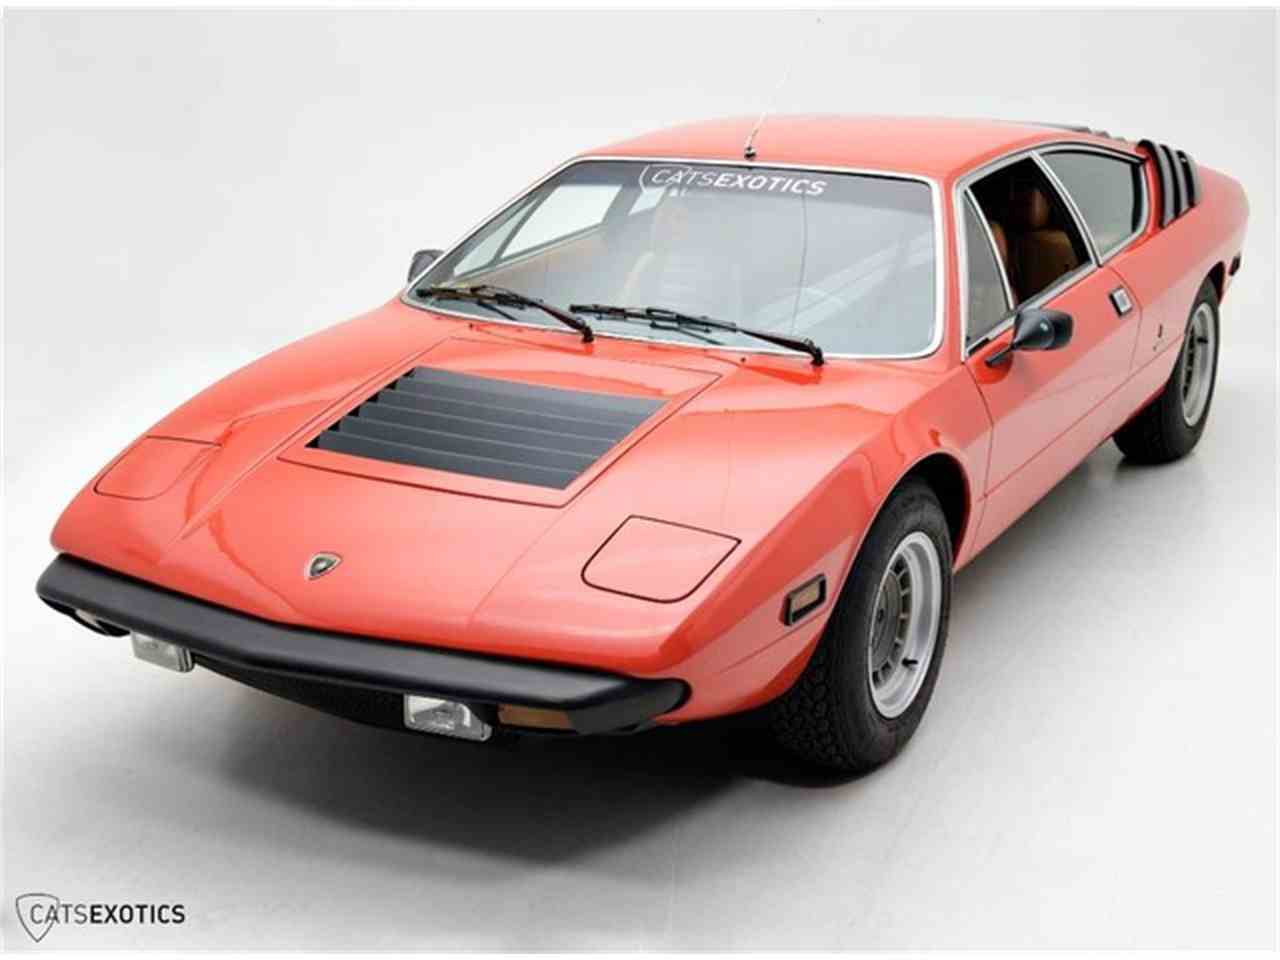 classic lamborghini for sale on classiccars - 77 available